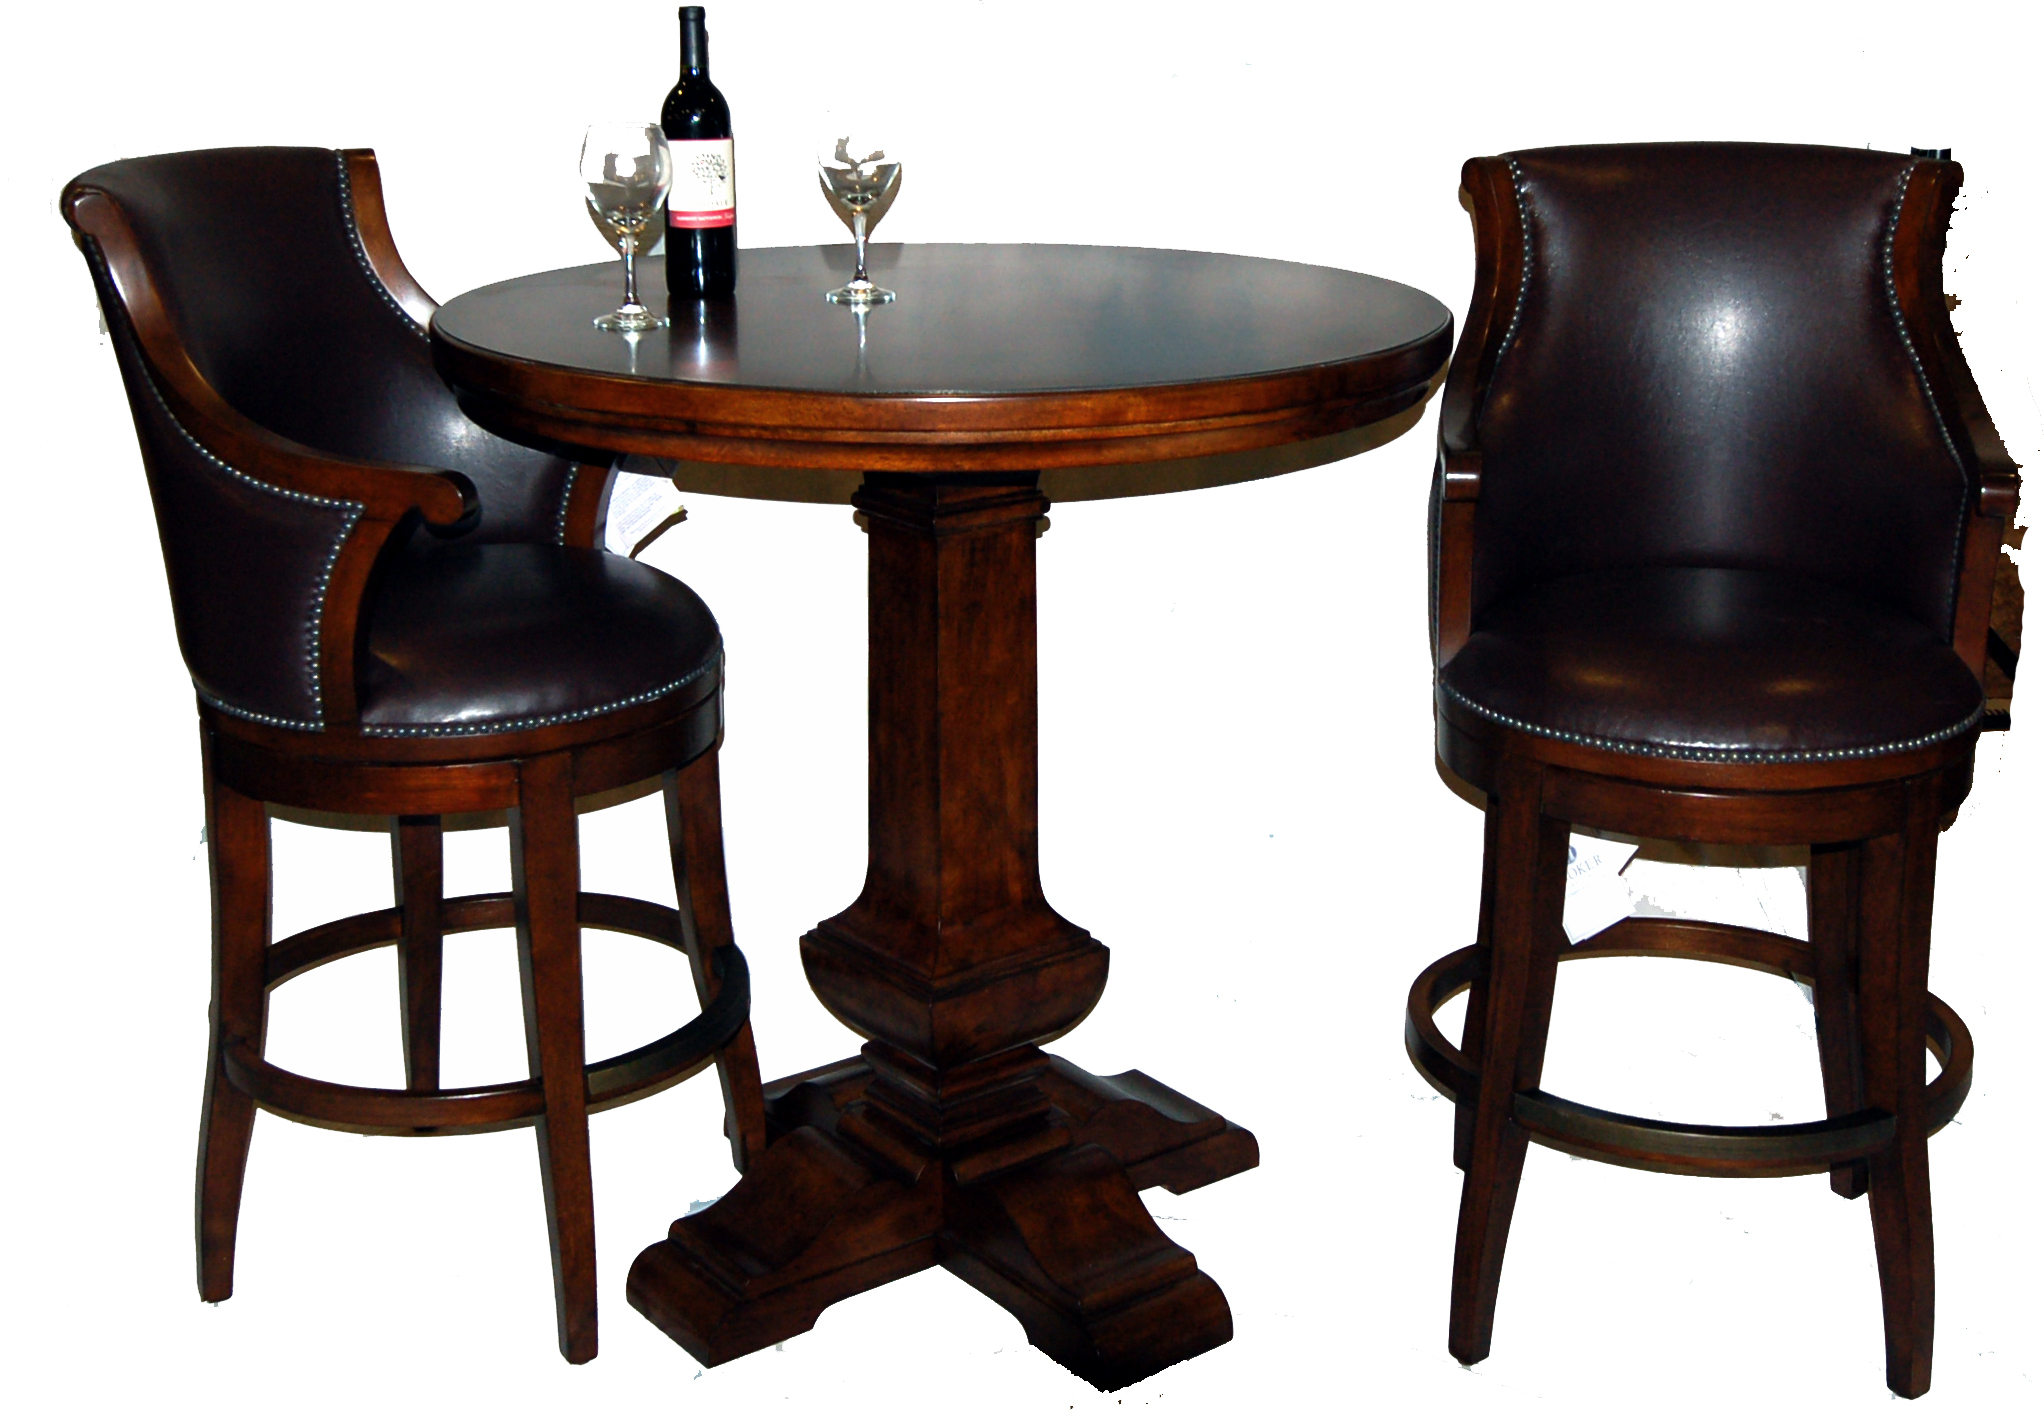 3 Piece Bar Table and Leather Swivel Stool Set